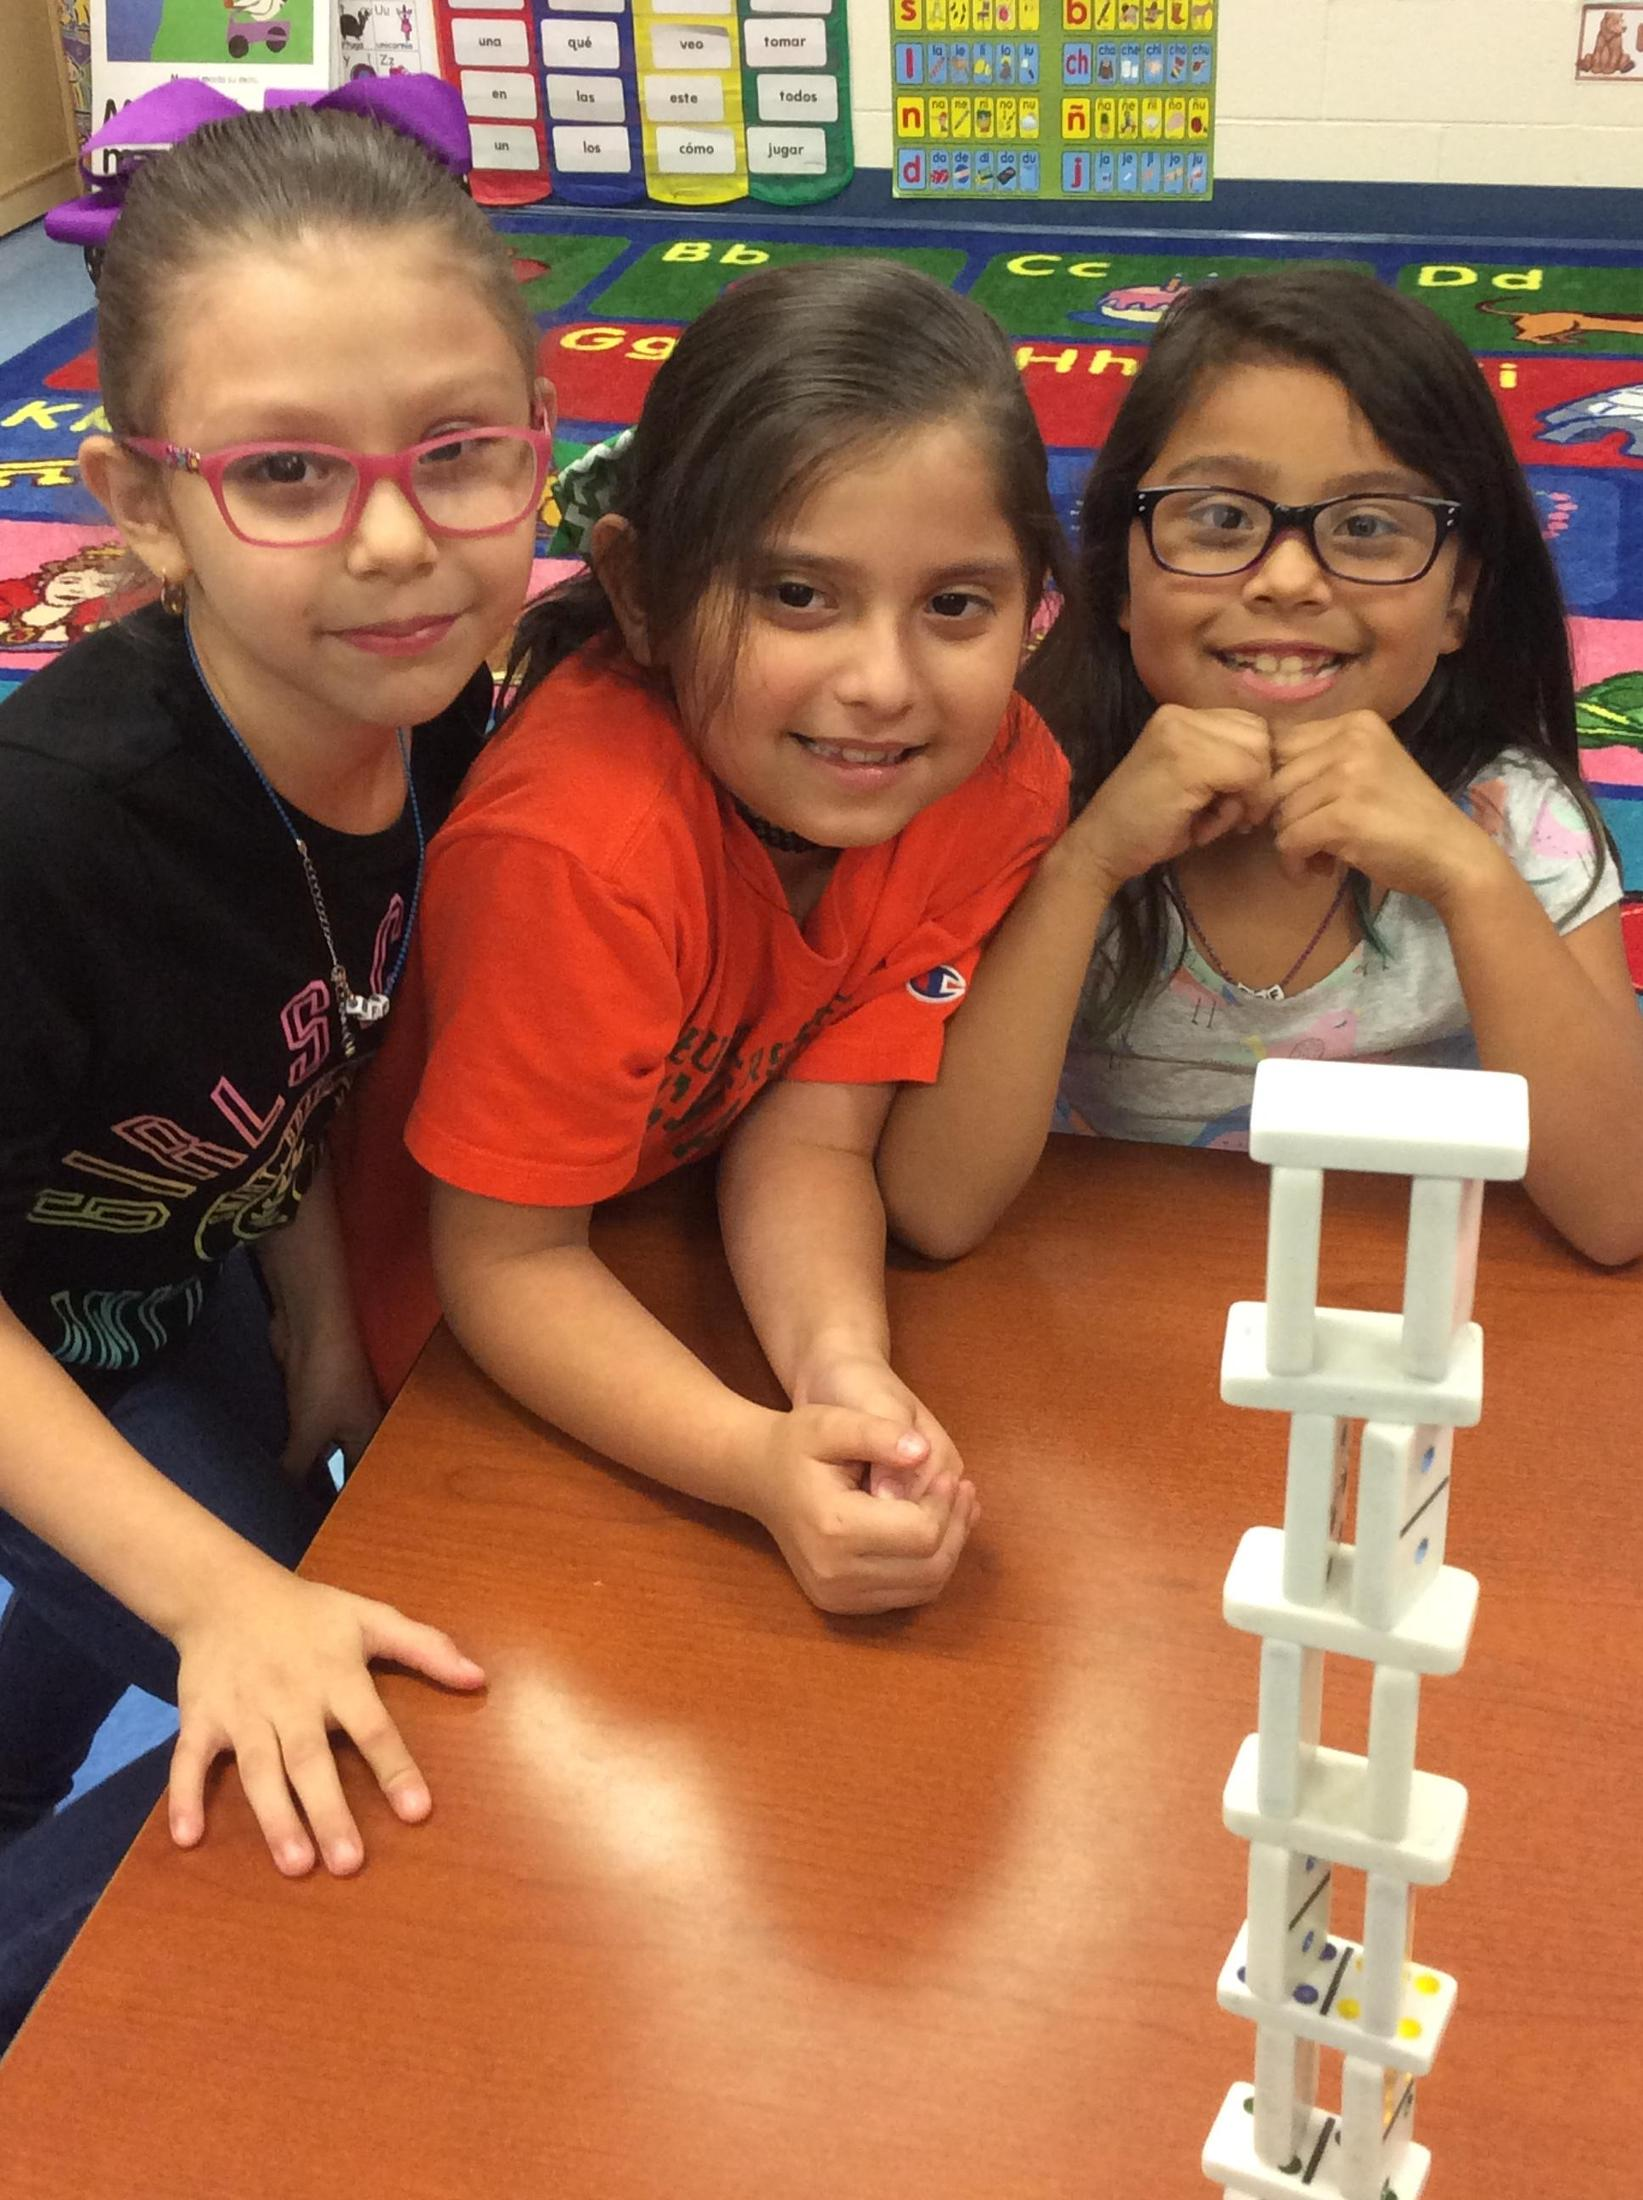 Students stacking dominos